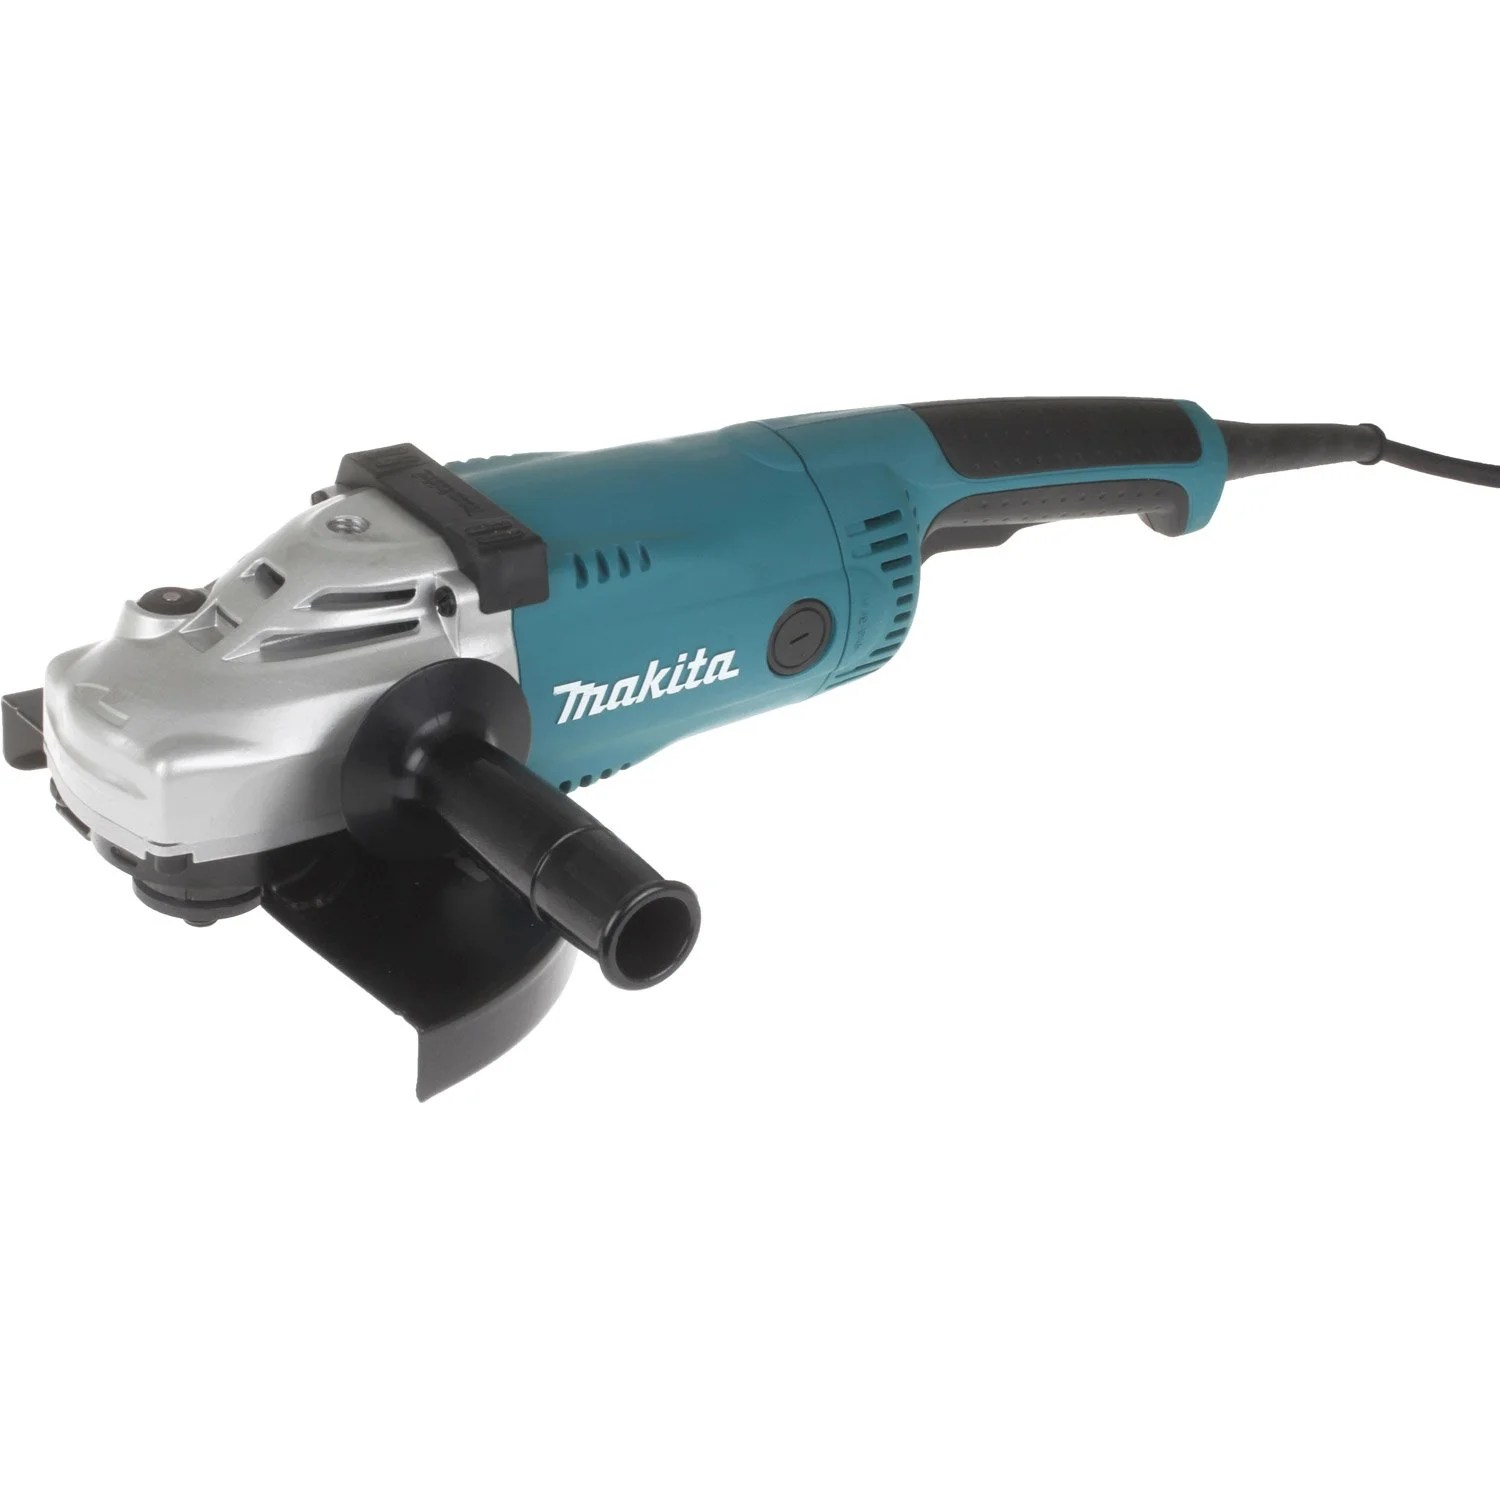 Perceuse Visseuse Leroy Merlin Perceuse Visseuse Makita 18v Leroy Merlin